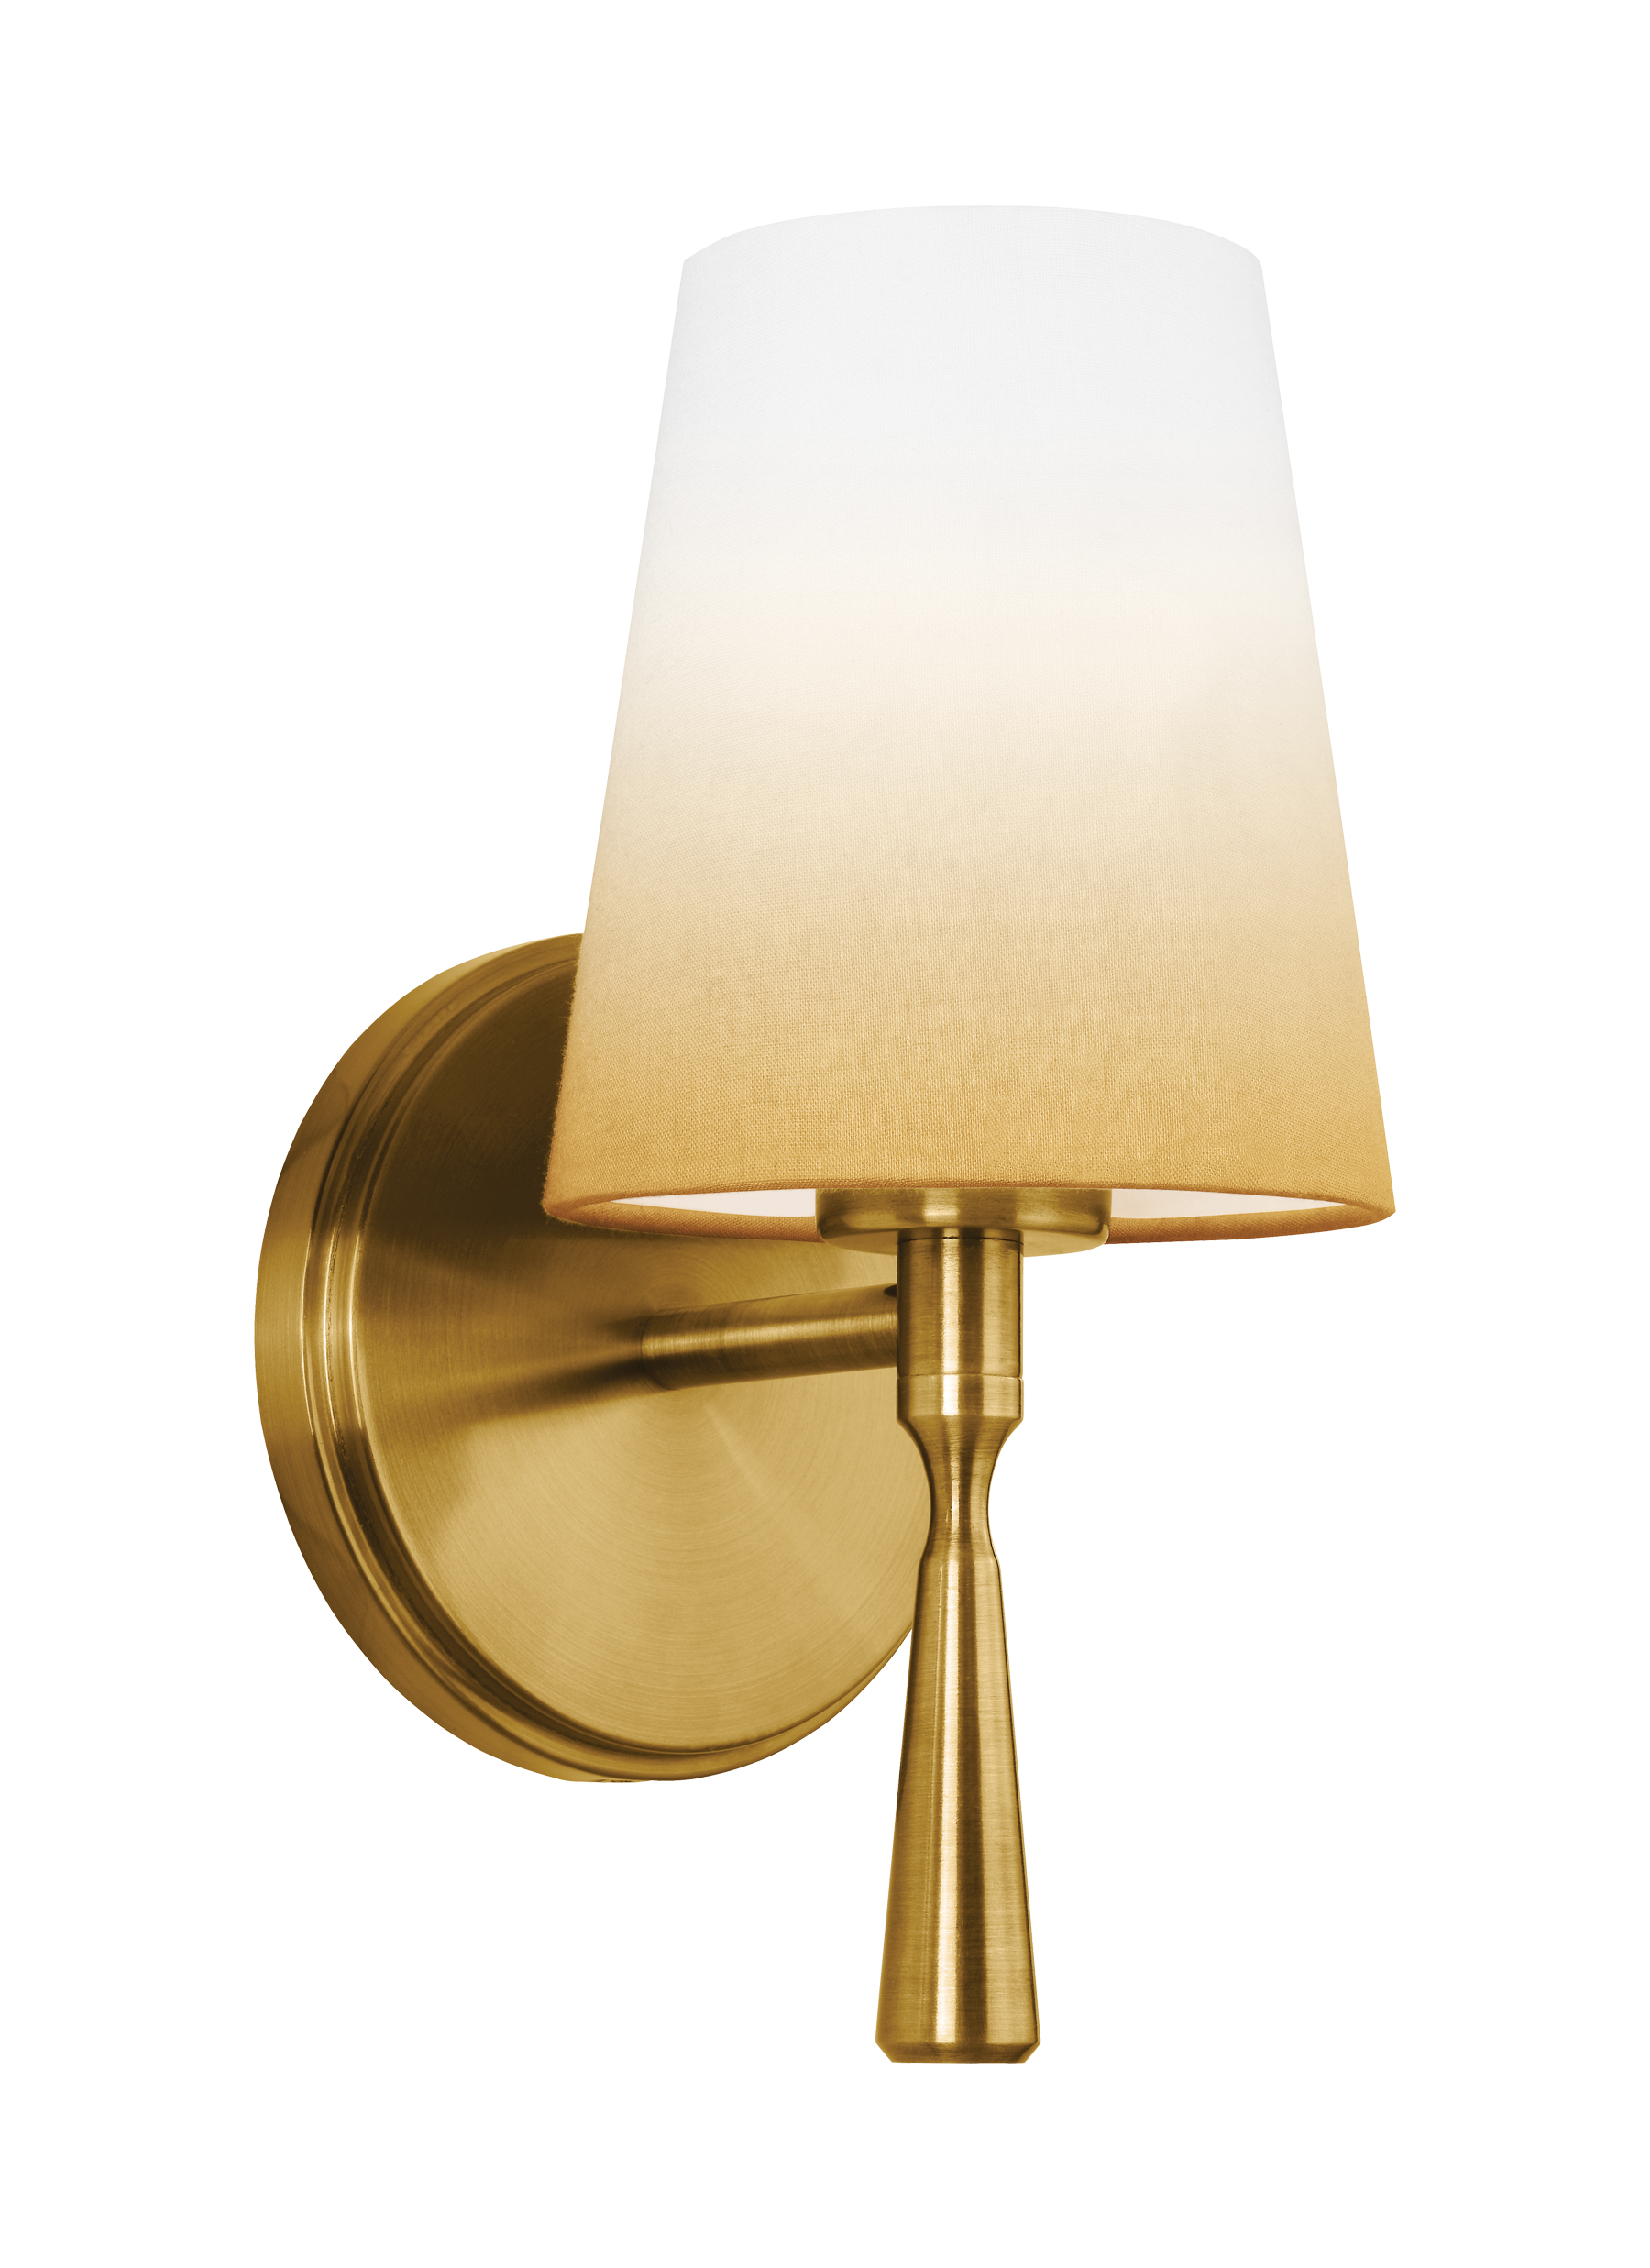 austin design led lighting reviews wayfair pdx trent sconce armed alguno light